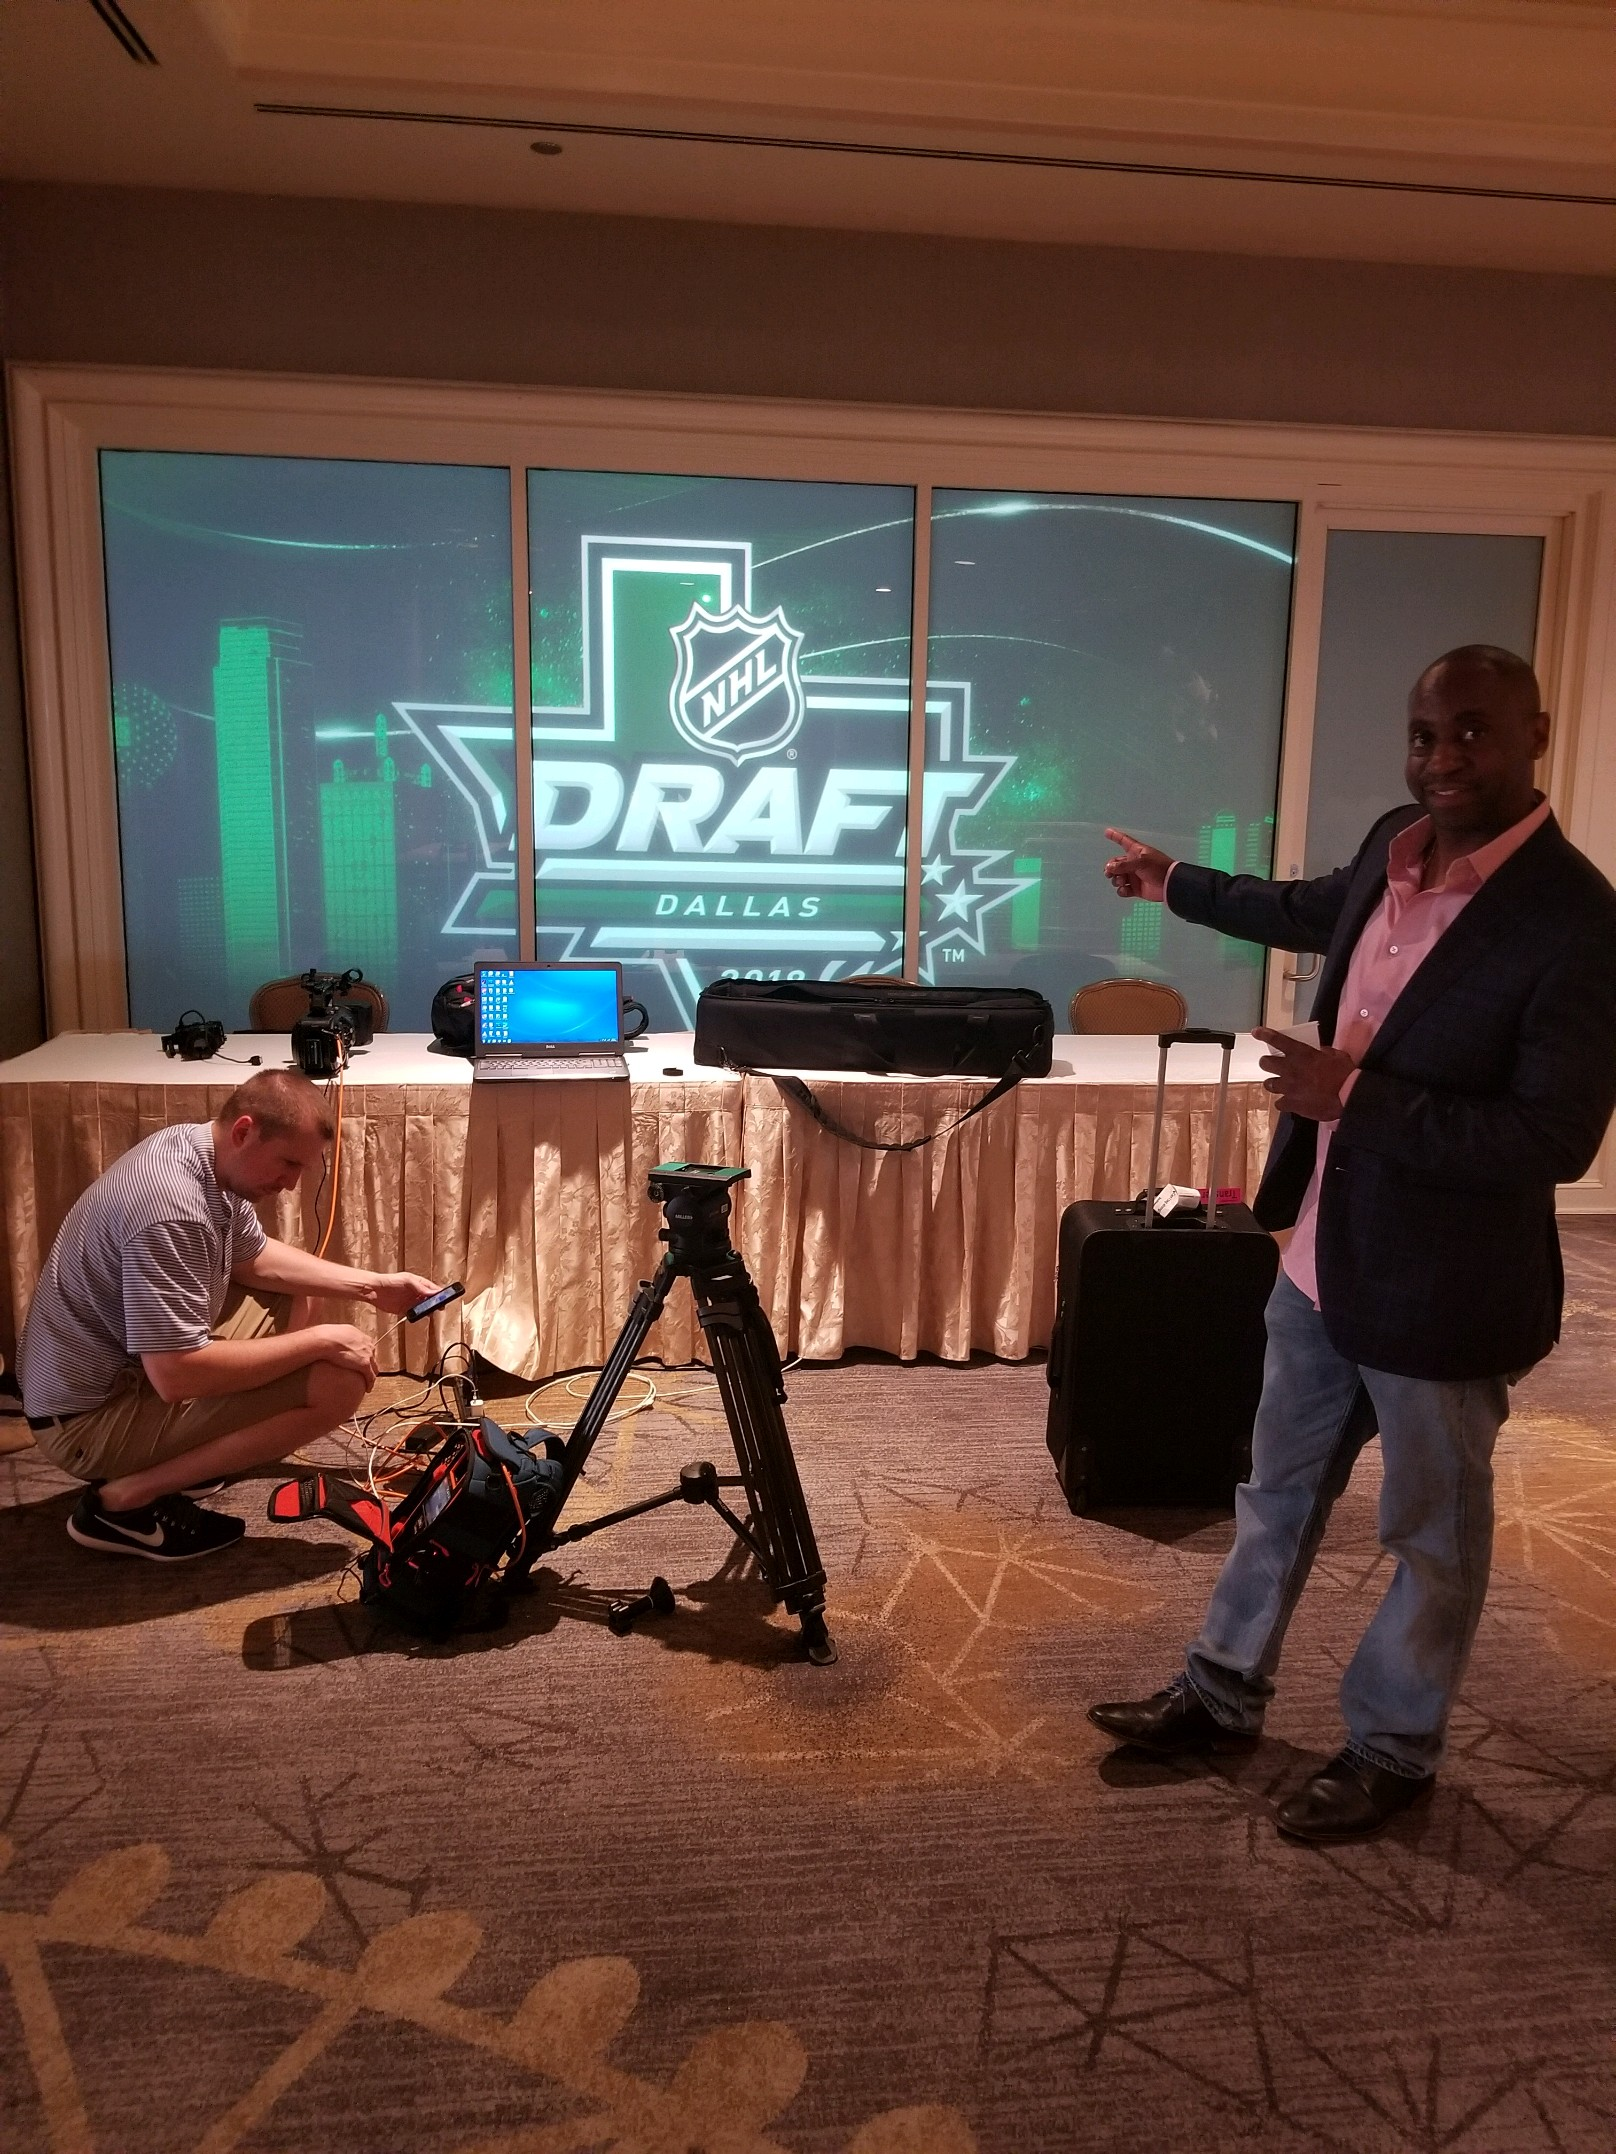 NHL Behind the Scenes Draft Event